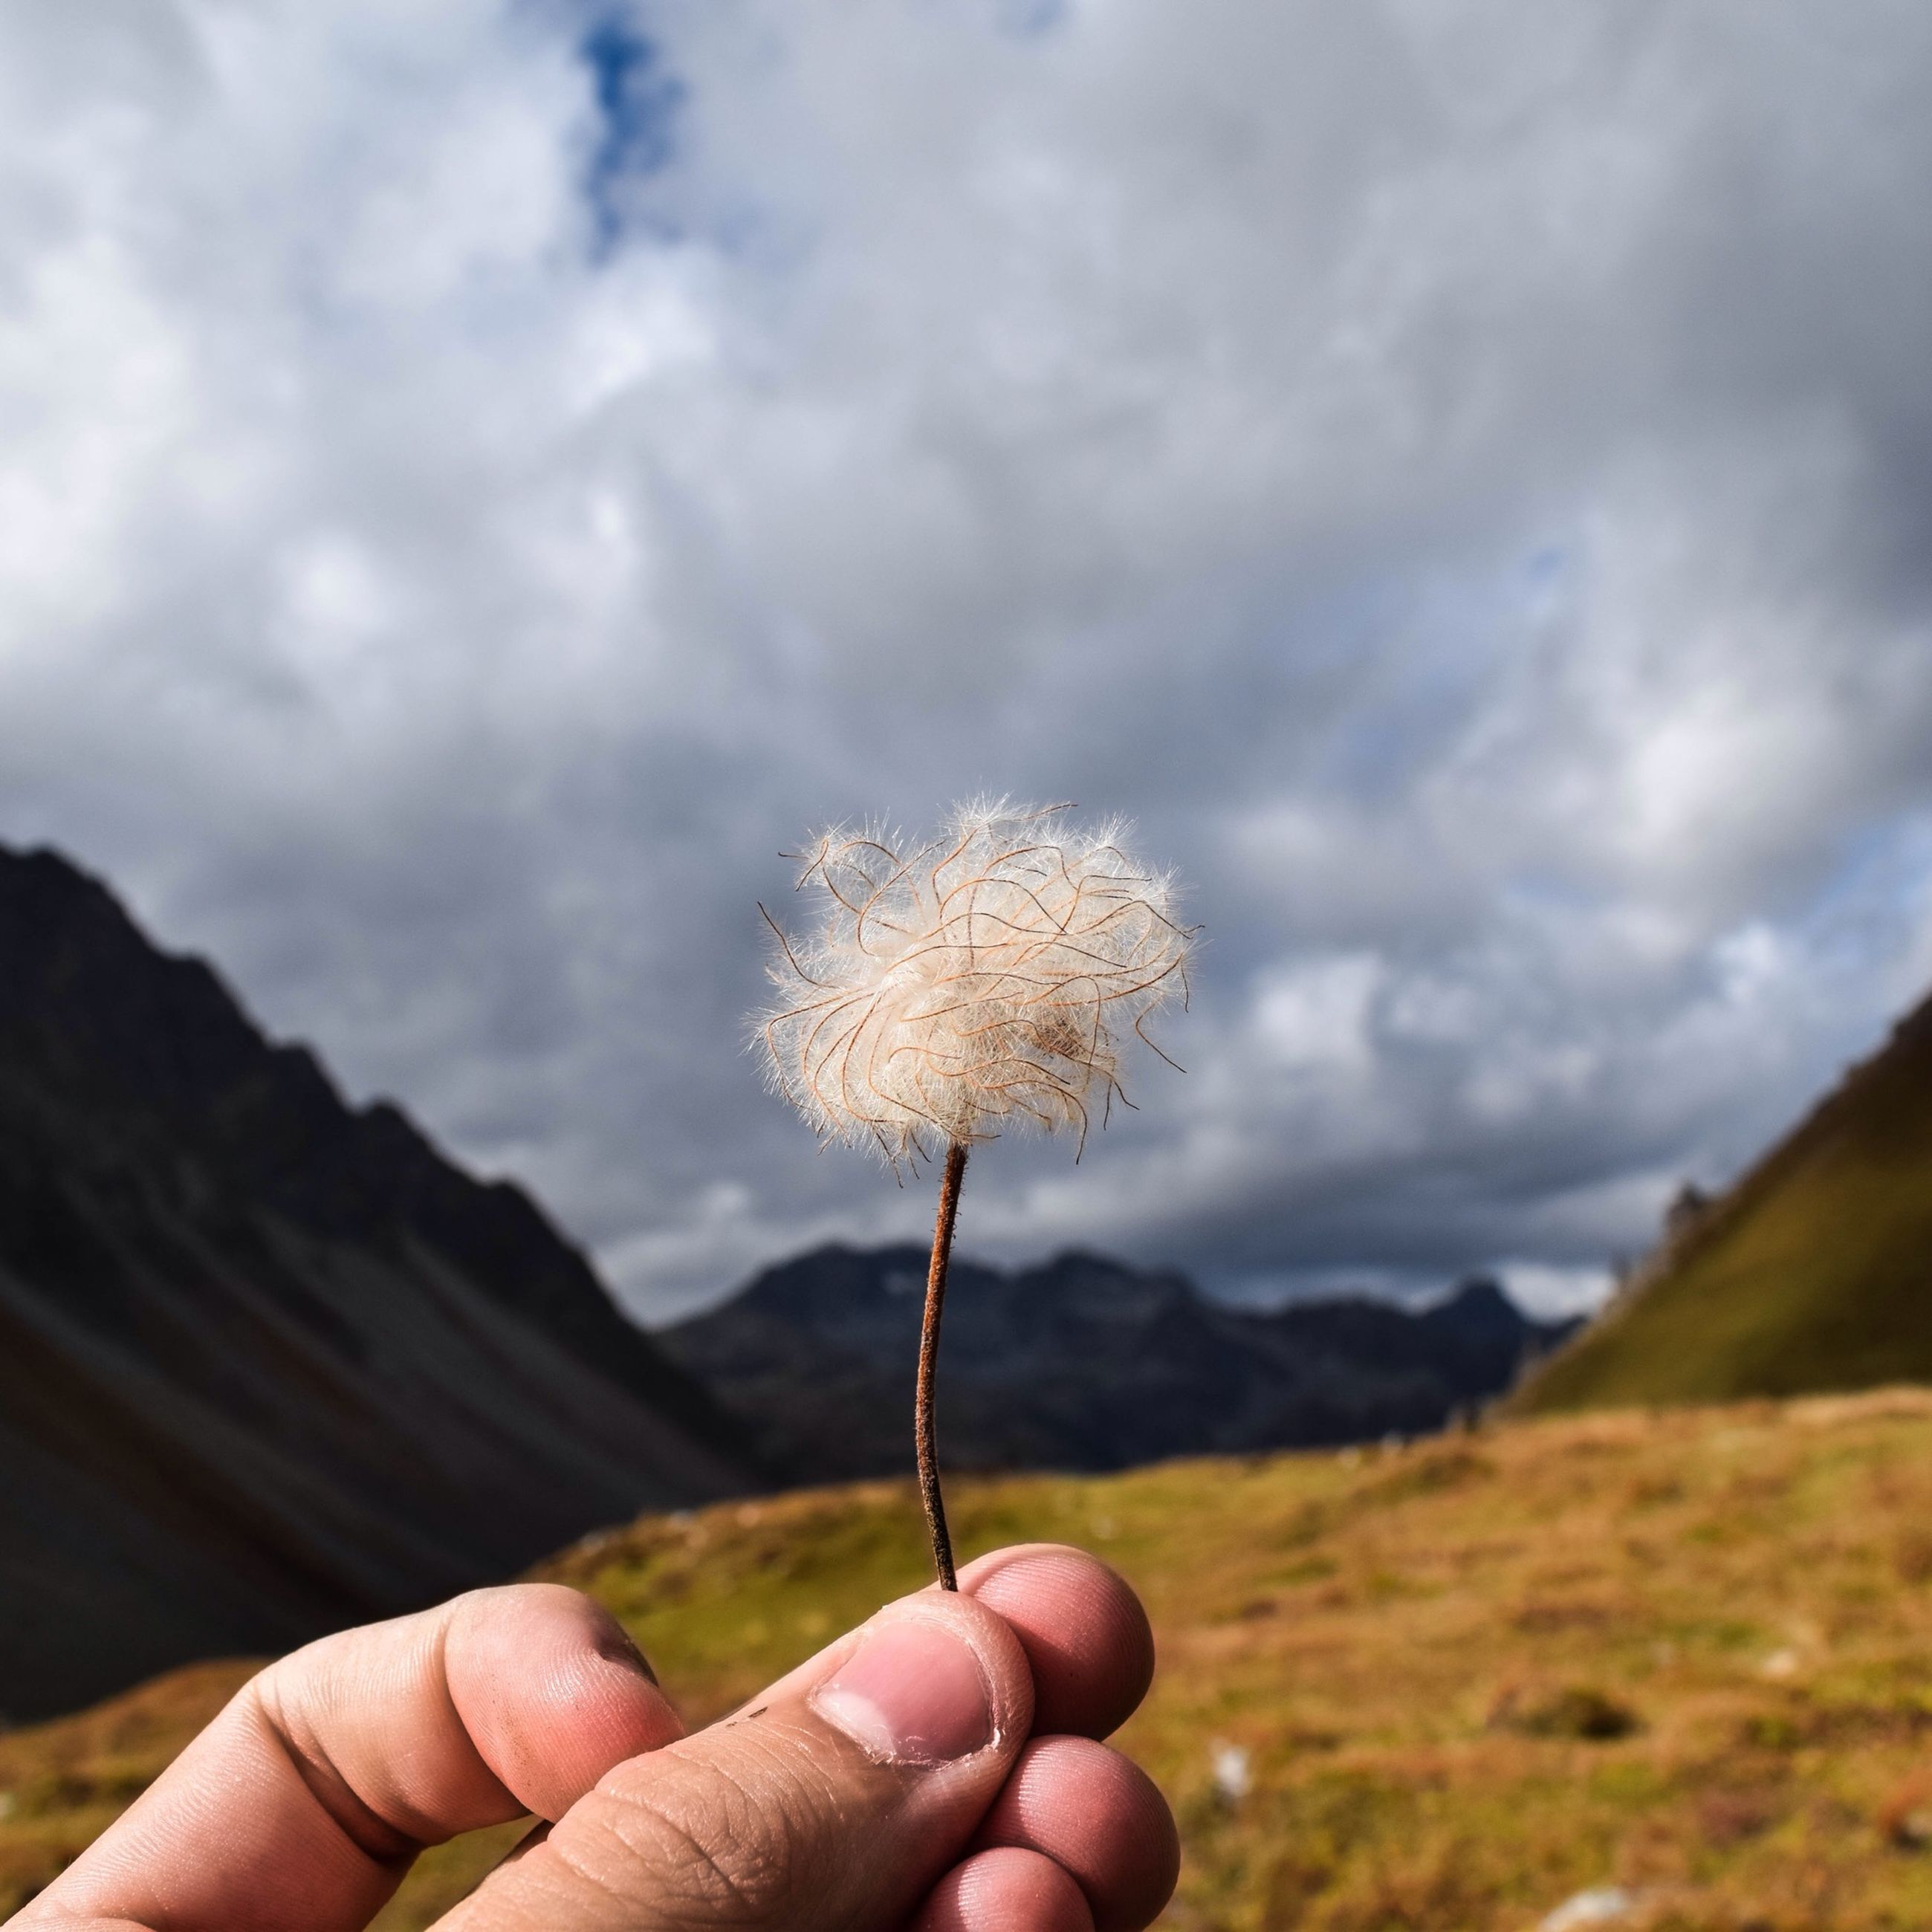 person, holding, part of, human finger, cropped, personal perspective, unrecognizable person, flower, focus on foreground, freshness, sky, fragility, close-up, dandelion, nature, lifestyles, leisure activity